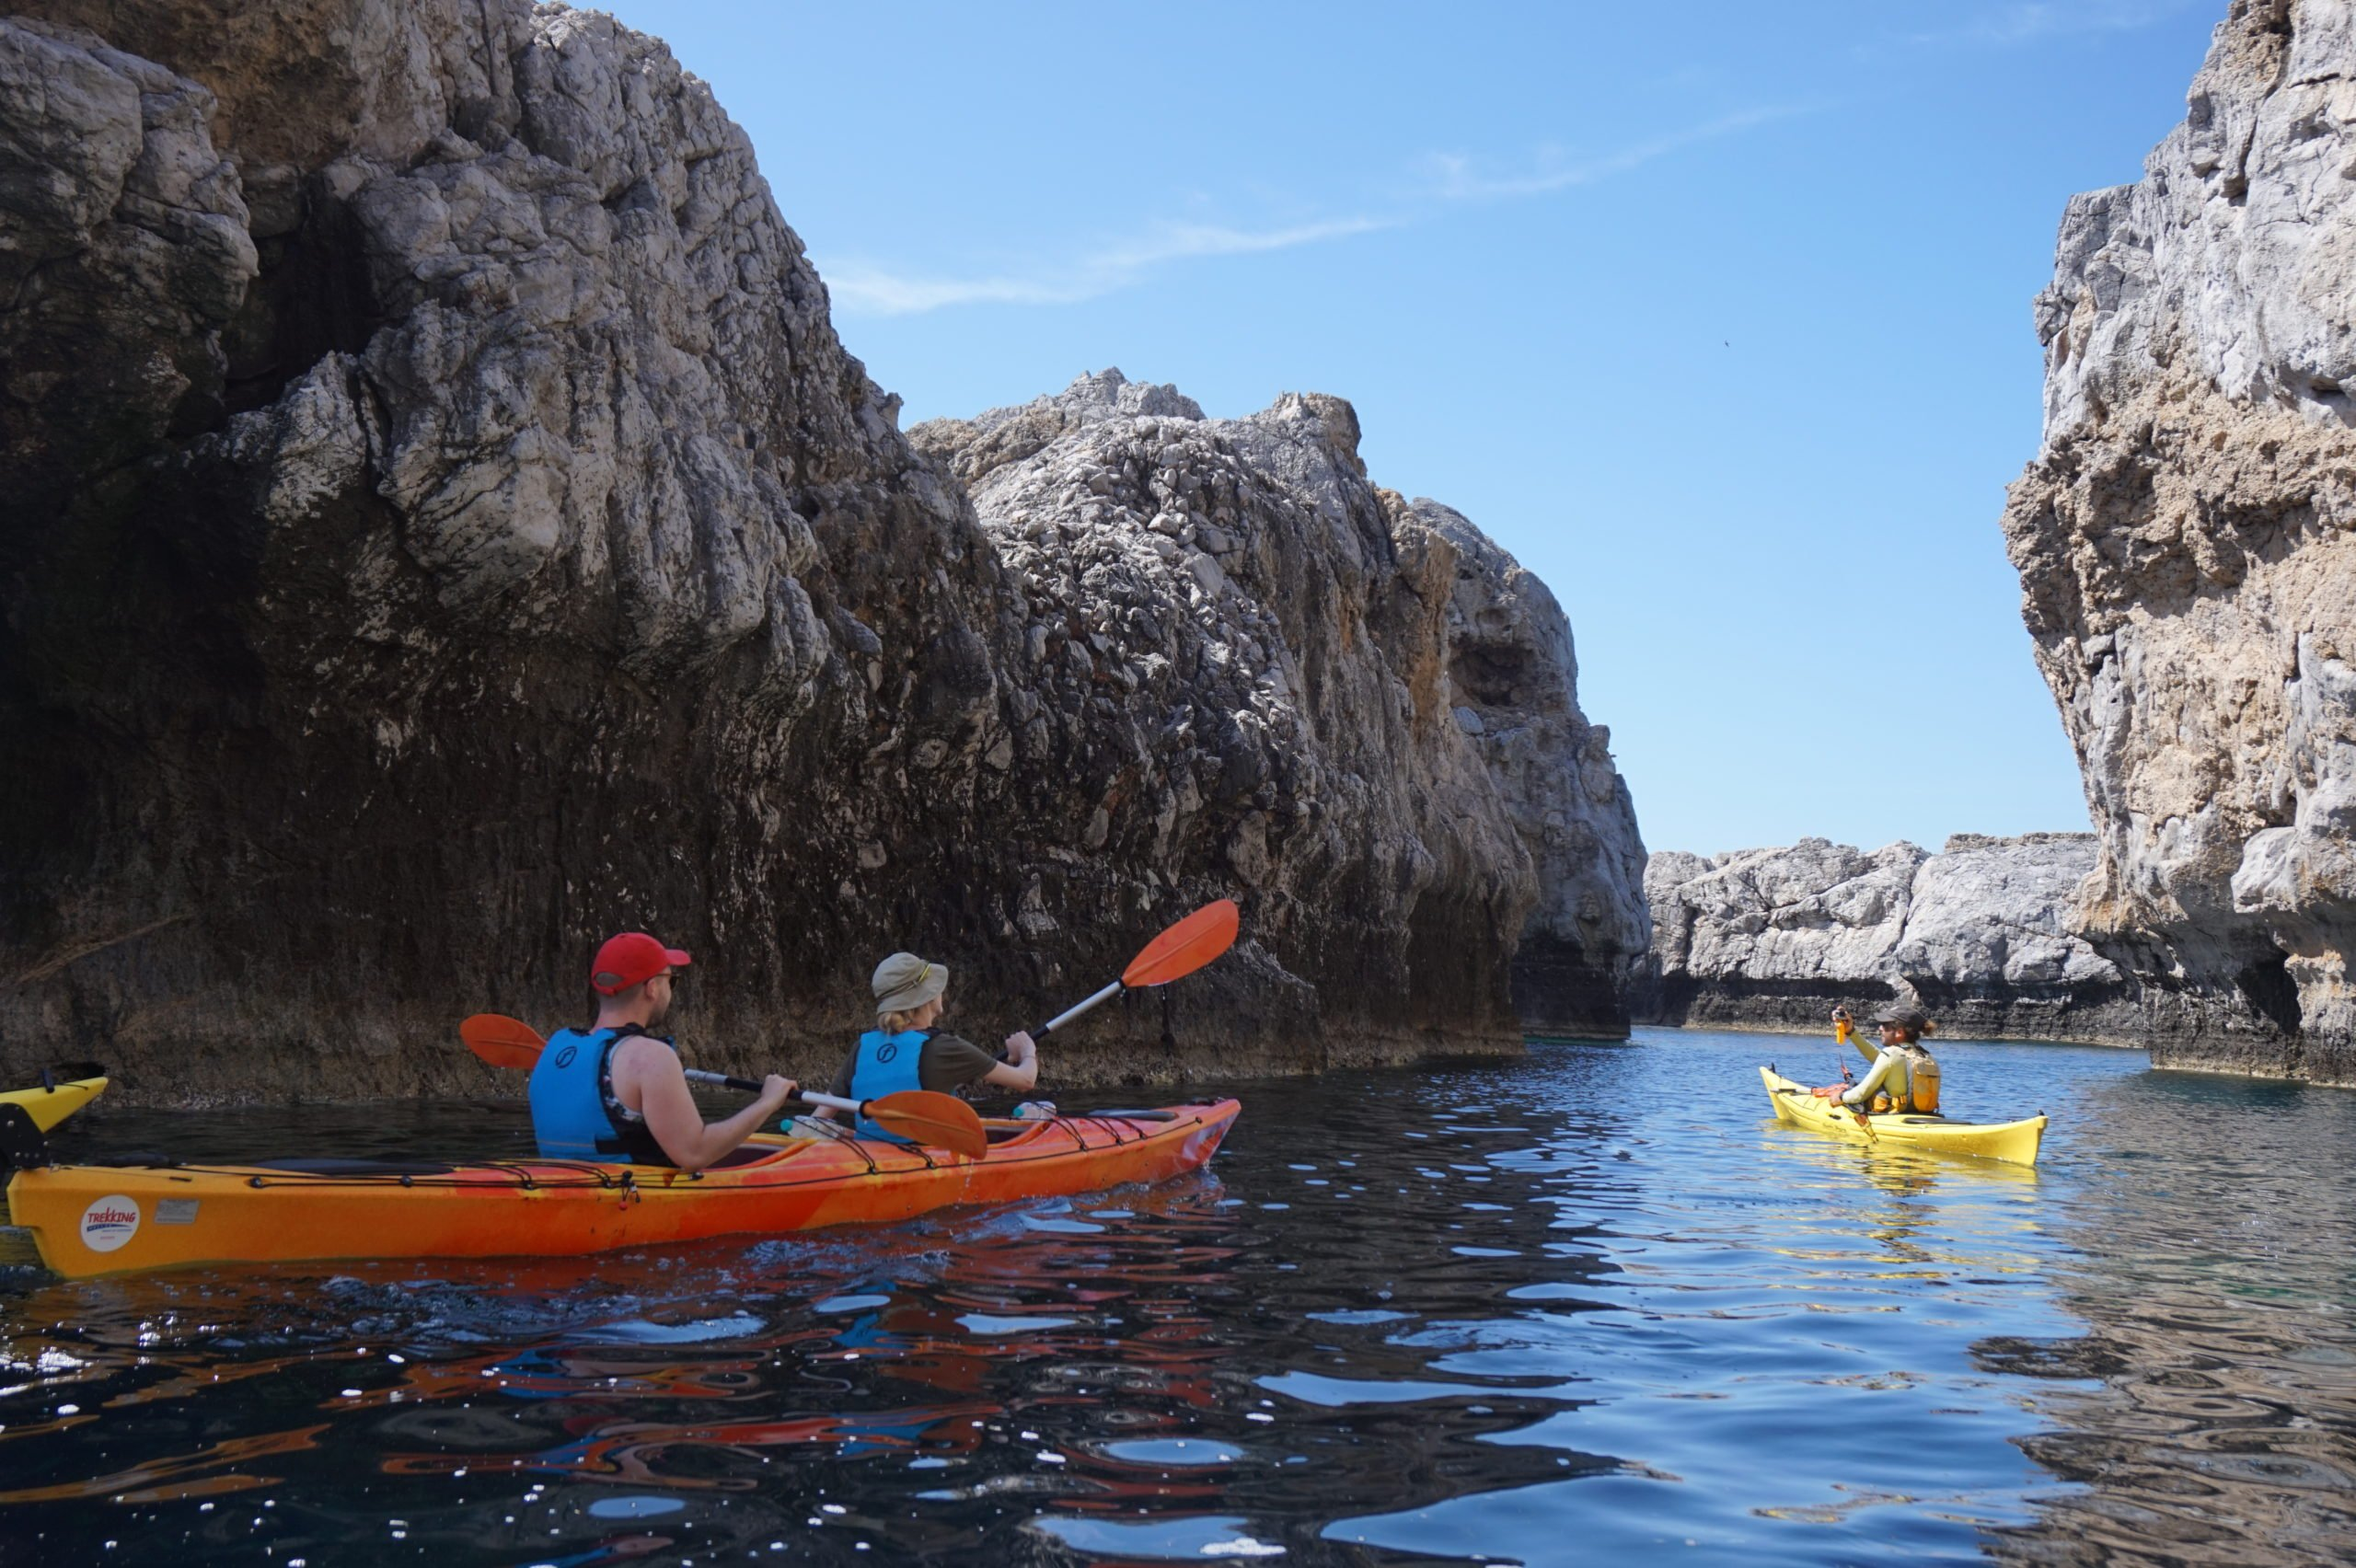 Admire The Scenery While Avoiding The Crowds In Our Sea Kayak Day Tour